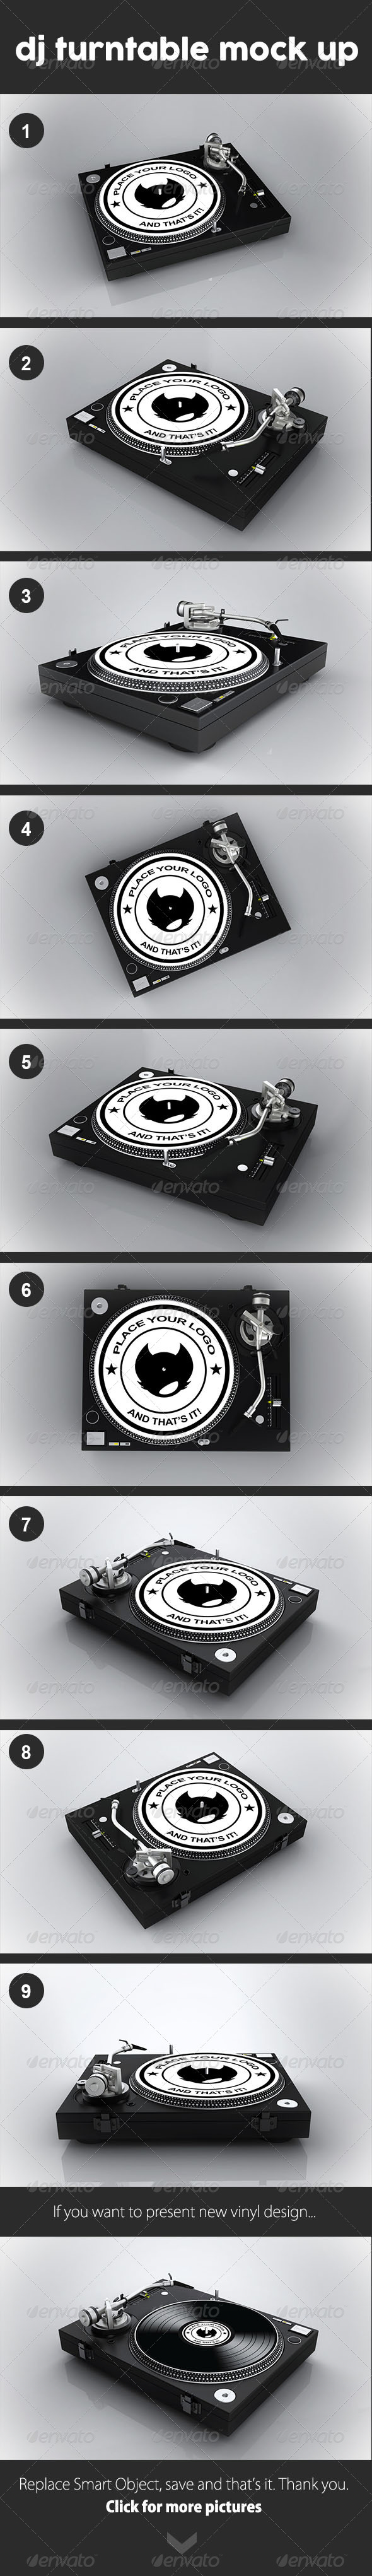 GraphicRiver Dj Turntable Mock Up 8492445